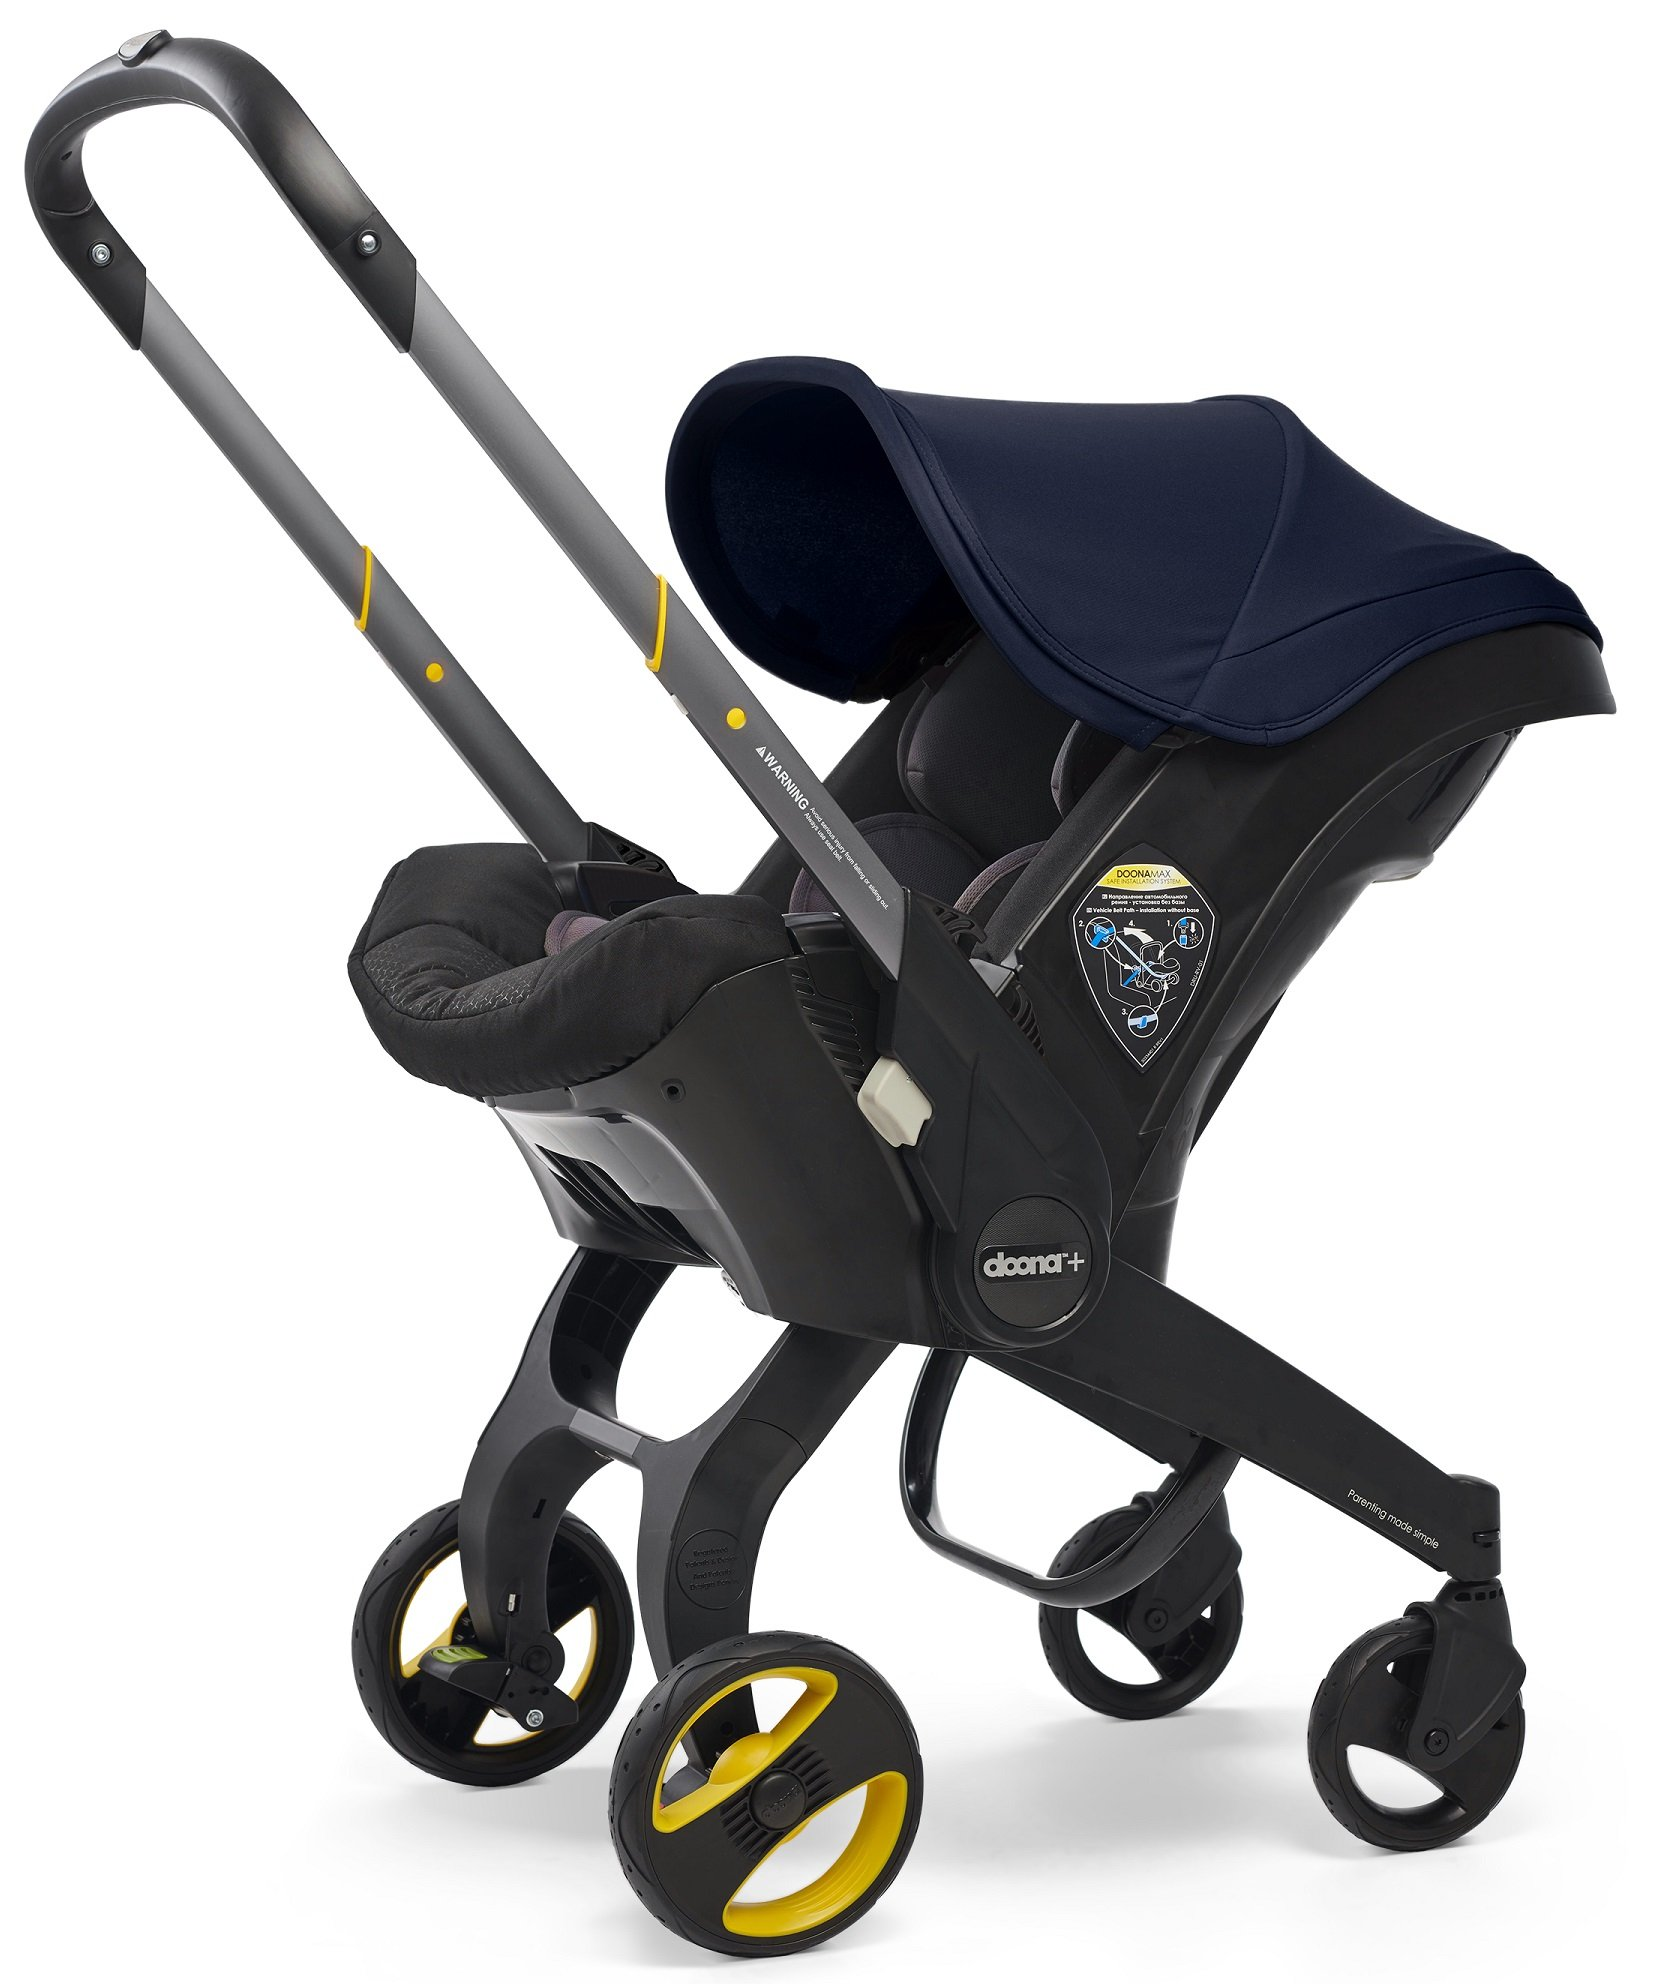 Stroller Doona Infant Car Seat And Stroller NON ISOFIX – Royal Blue